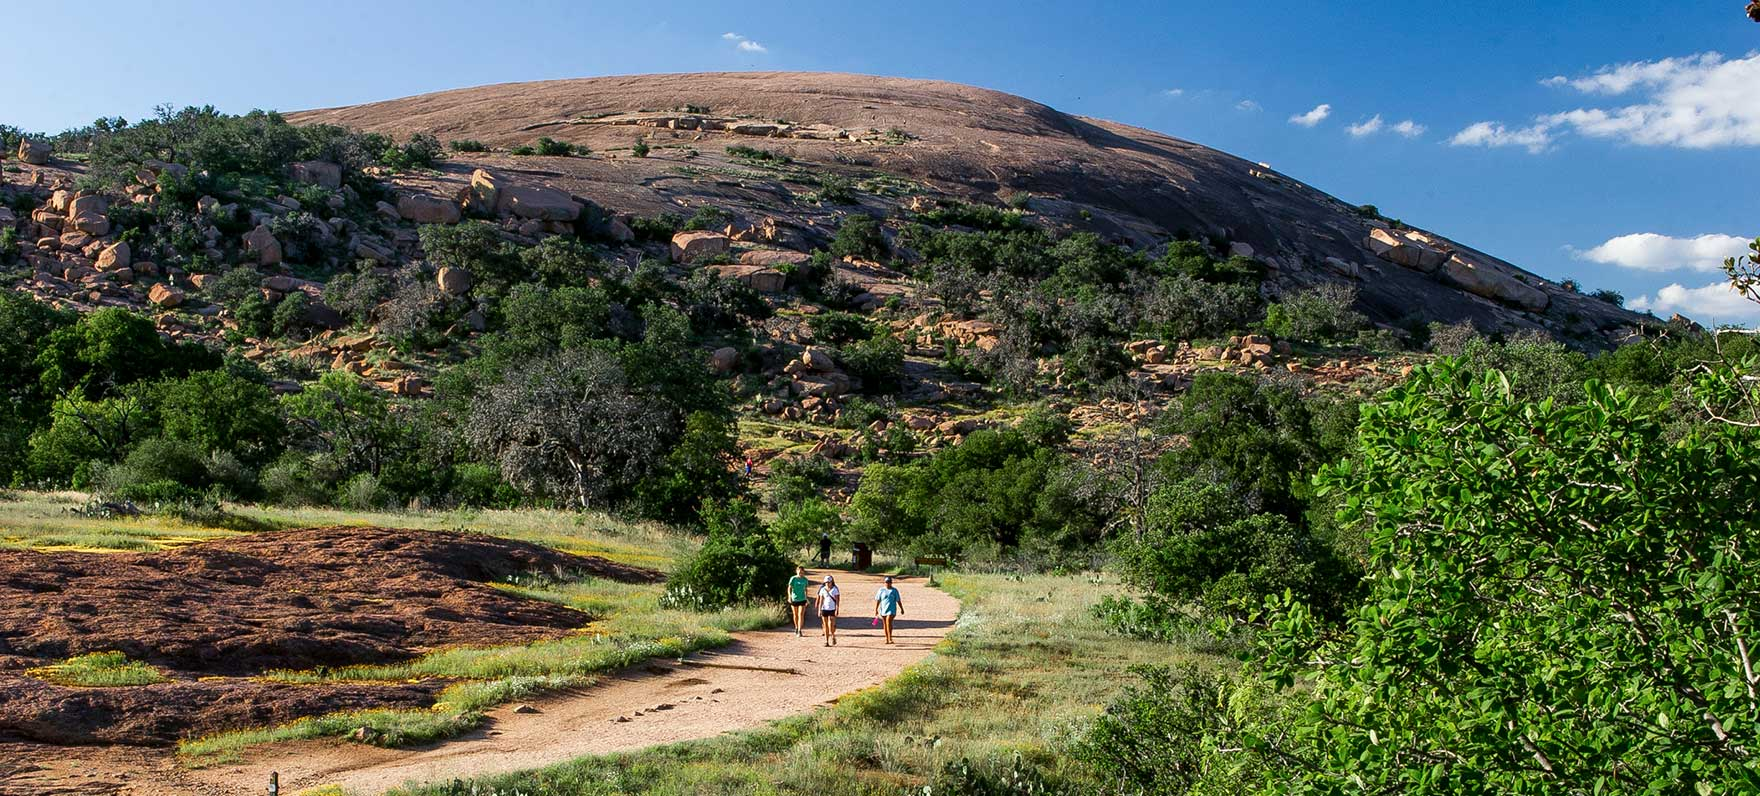 Enchanted Rock Texas Map, Enchanted Rock State Natural Area, Enchanted Rock Texas Map